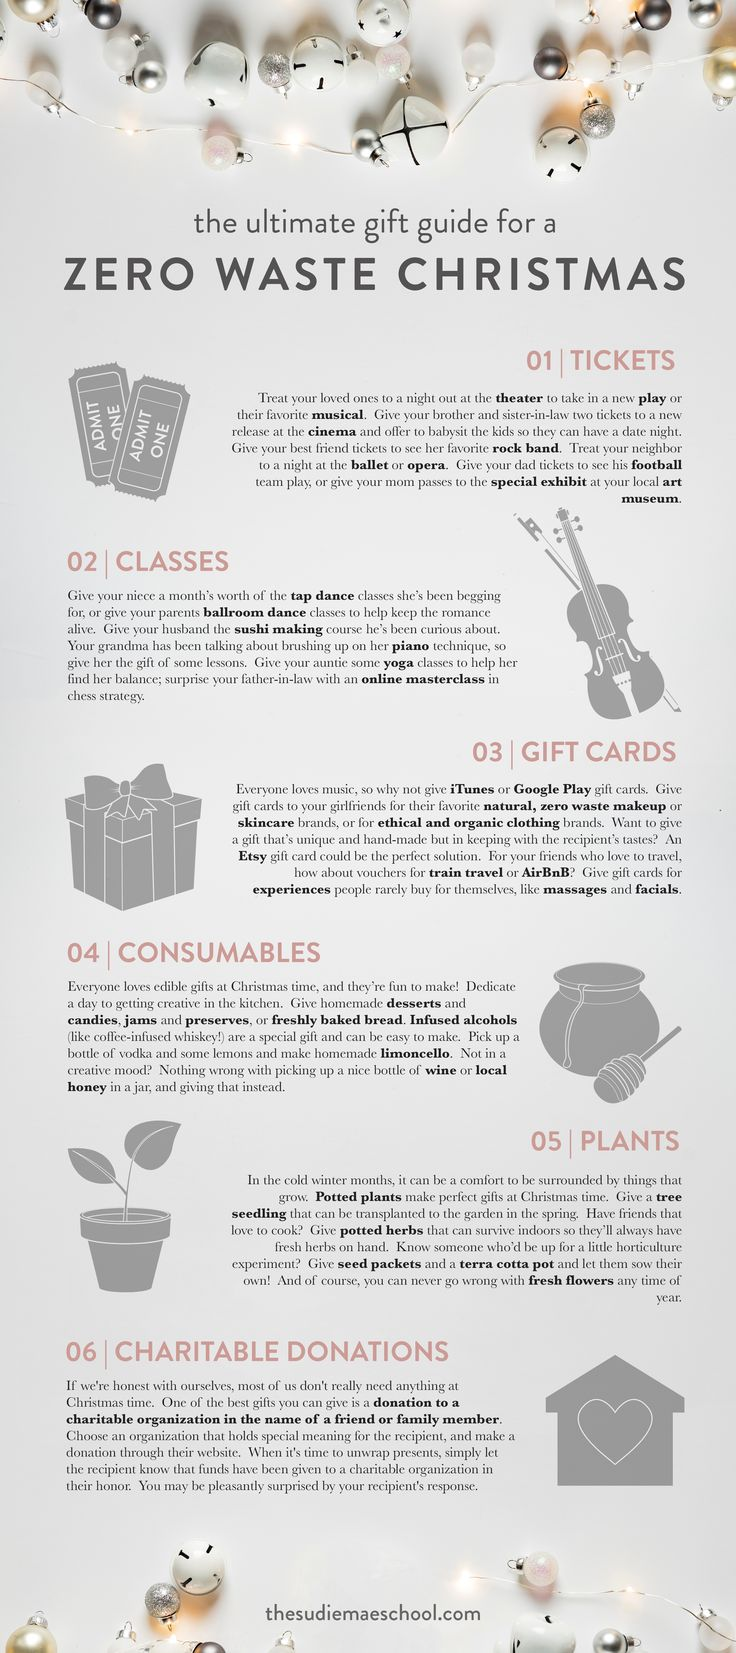 Christmas gift ideas that don't create excess waste!